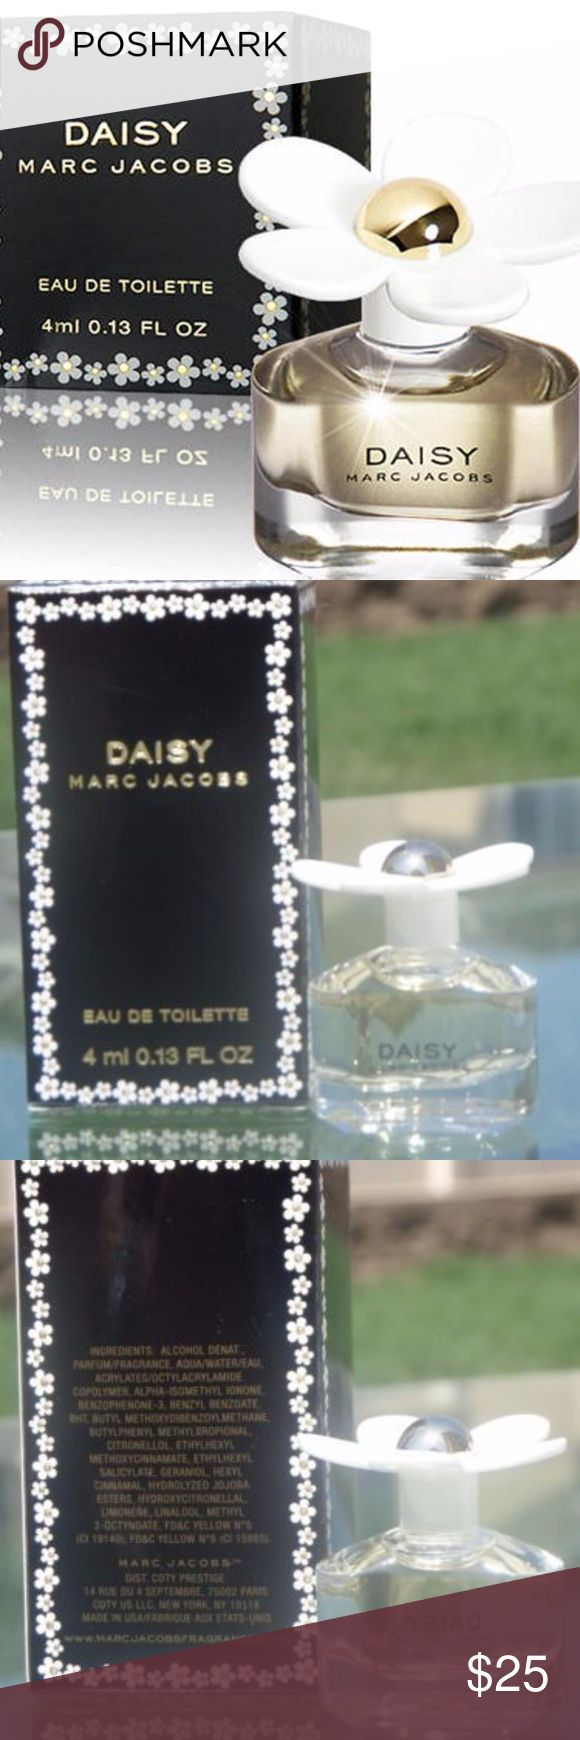 New in Box Marc Jacobs Daisy Mini Perfume From the House of Marc Jacobs New in Box Daisy 4ml/.13oz Eau de Toilette Mini Collectible Parfum  A truly fresh & feminine fragrance with a playful innocence.  Elegant, sophisticated, enchanting but not too serious.  Wraps you in comfort warmth & a sparkling floral bouquet.   Notes of violet leaves, violet petals, jasmine petals, strawberry, ruby red grapefruit. Blended with musk, vanilla & white woods  **Plz Note Price is FIRM unless Bundled** Marc…